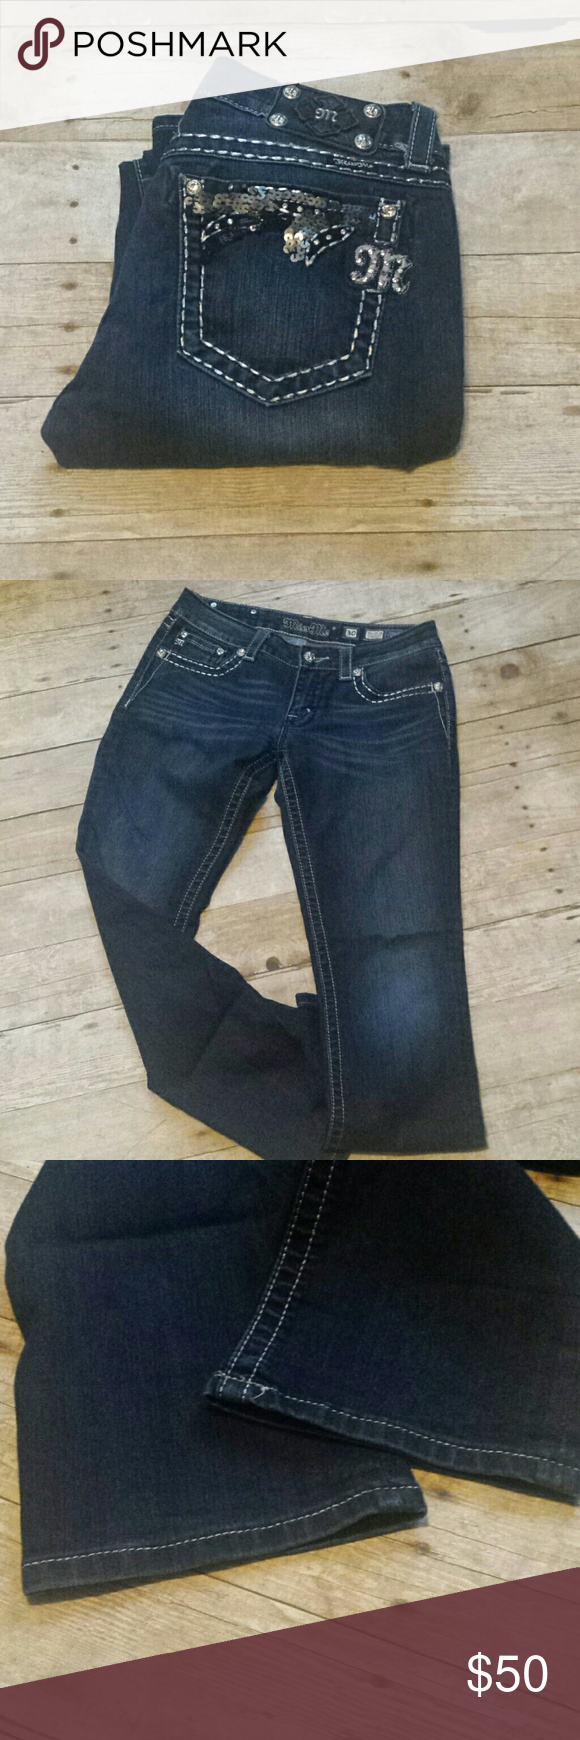 "Miss Me Straight Leg Bling Jeans! Miss Me Straight Leg Bling Jeans! Size 30, inseam 31"". EUC. Miss Me Jeans Straight Leg"